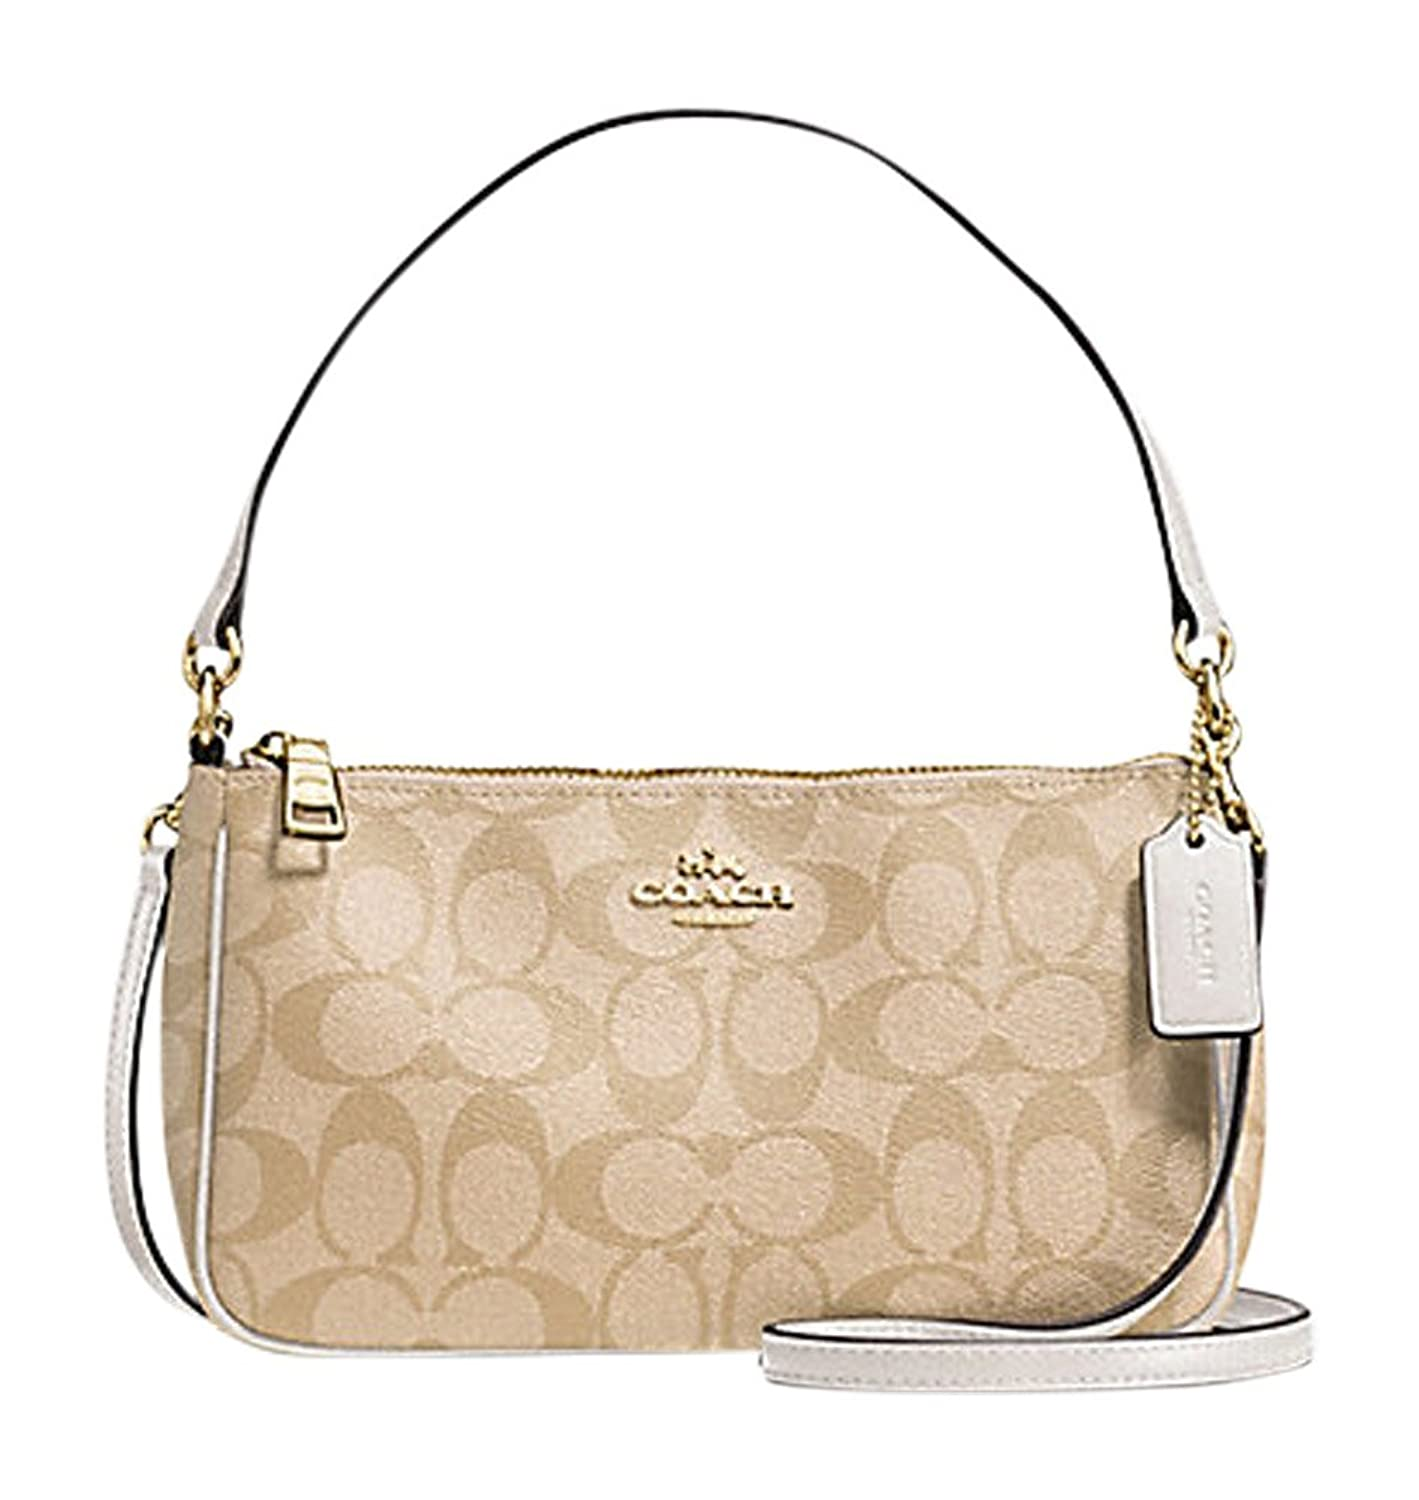 coach shoulder bag outlet bg95  outlet COACH Signature Coated Canvas Top Handle Crossbody F58321 Light  Khaki/Chalk